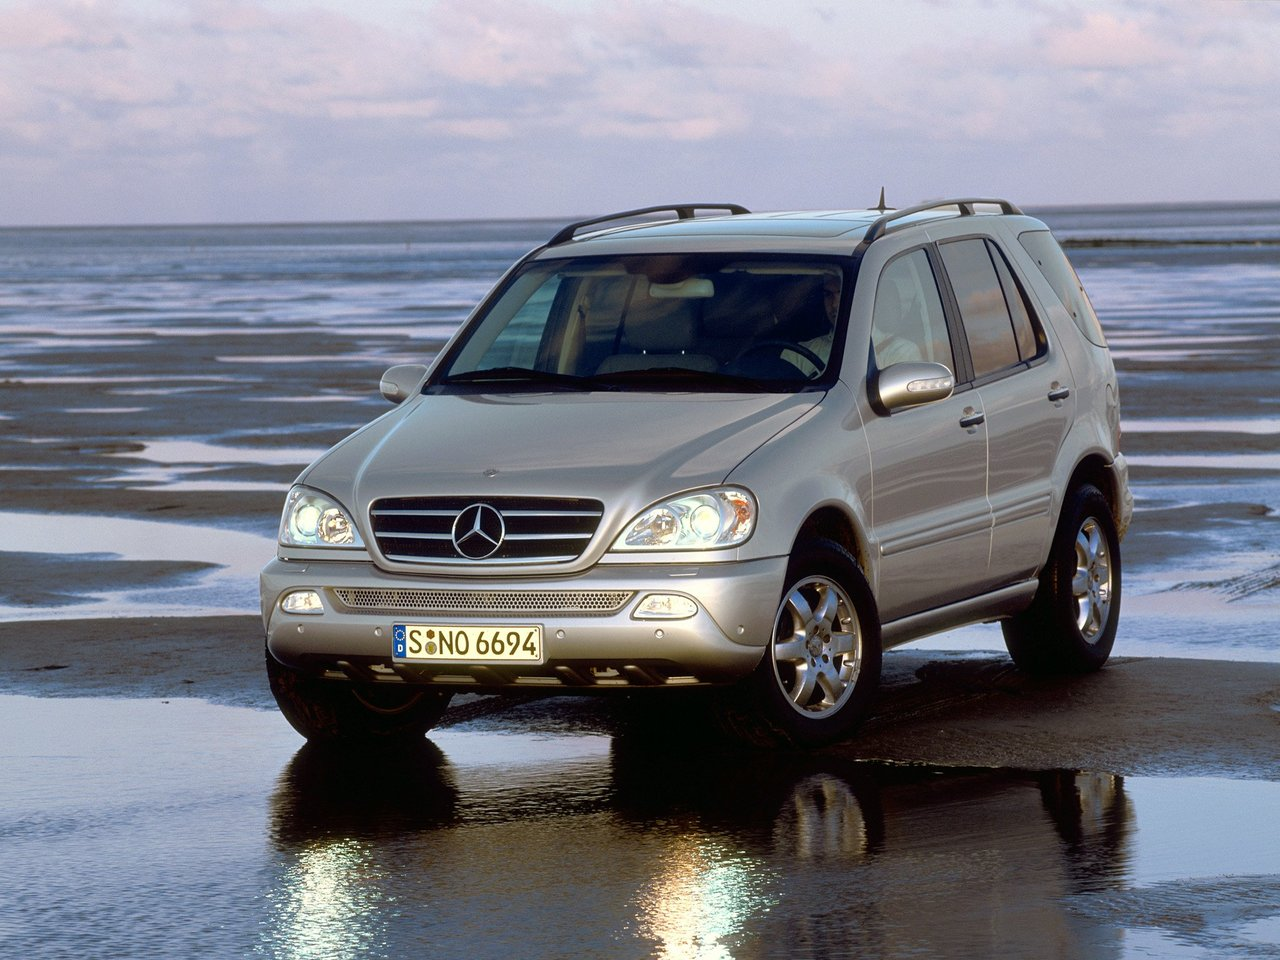 Mercedes Benz ML320 W163